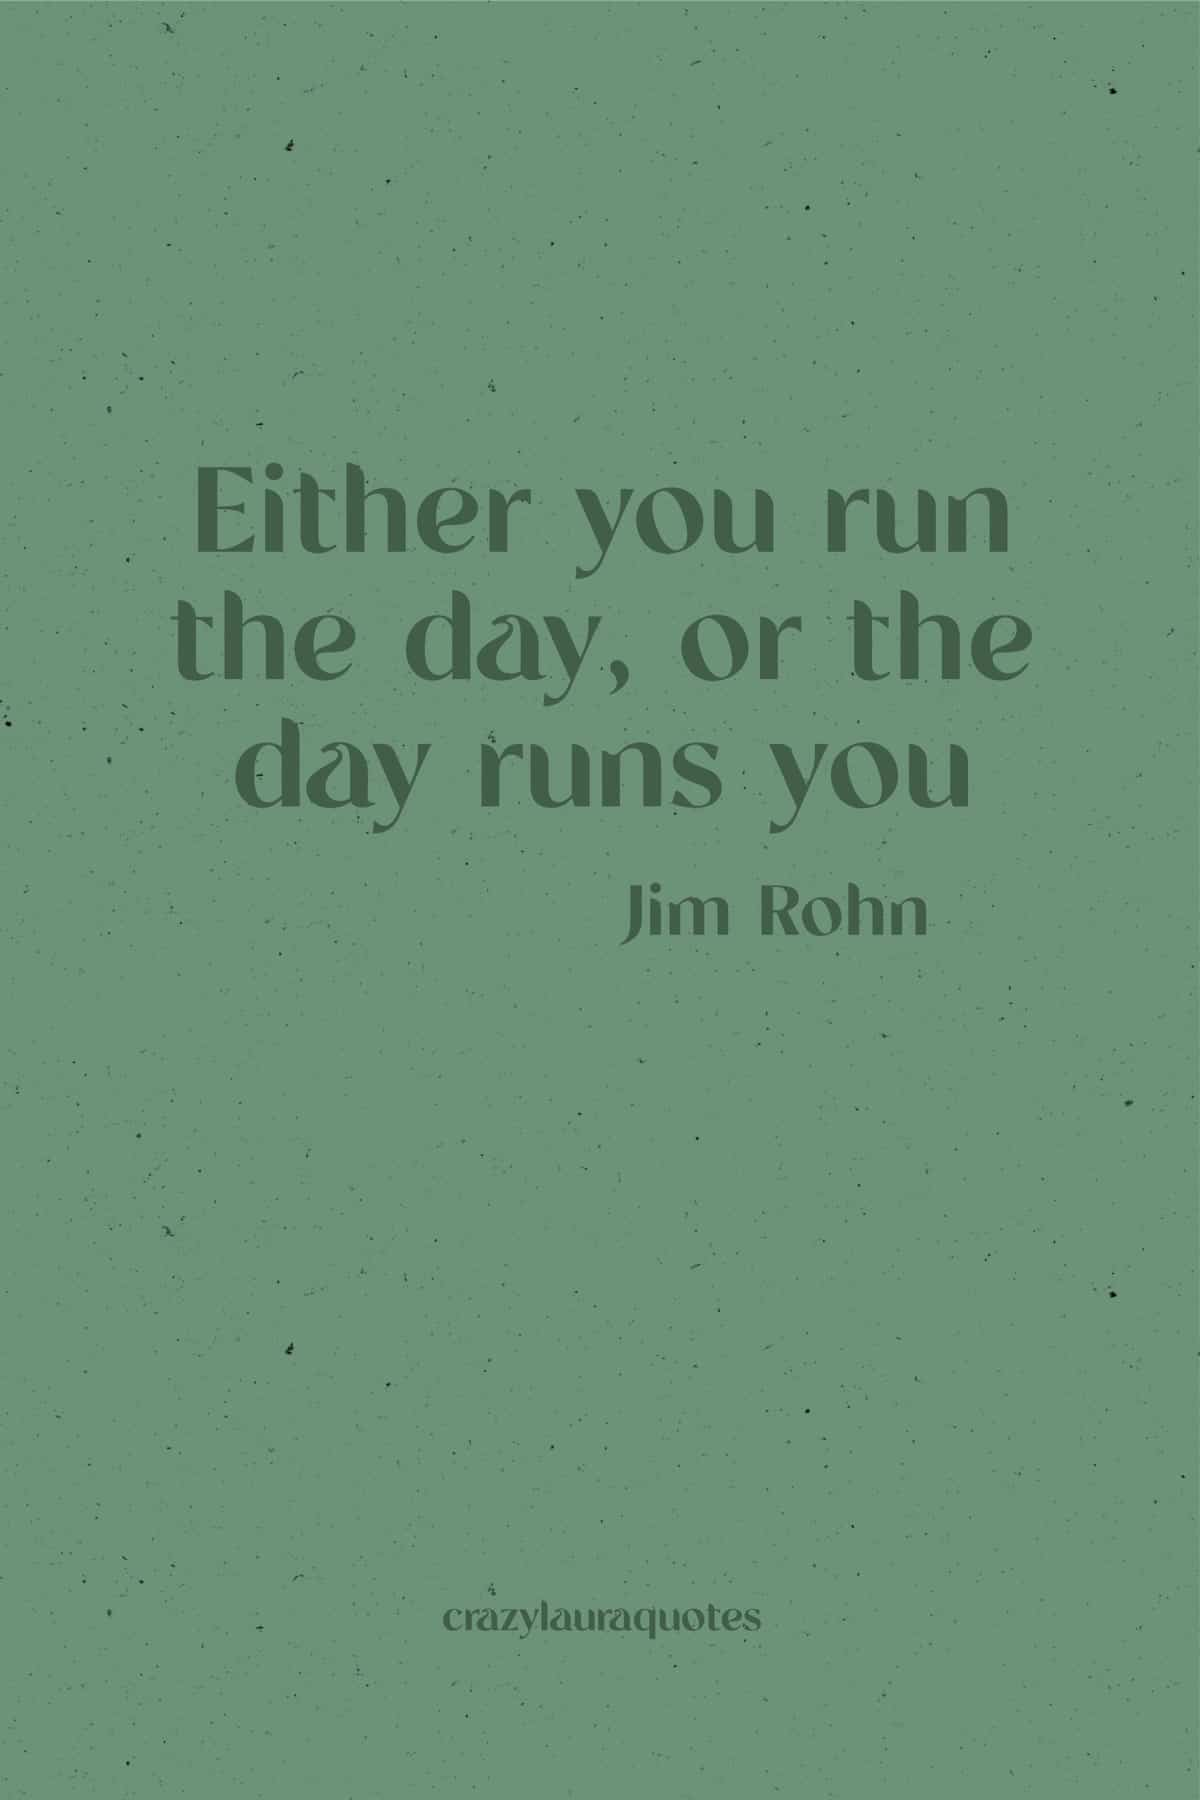 jim rohn quote about taking control